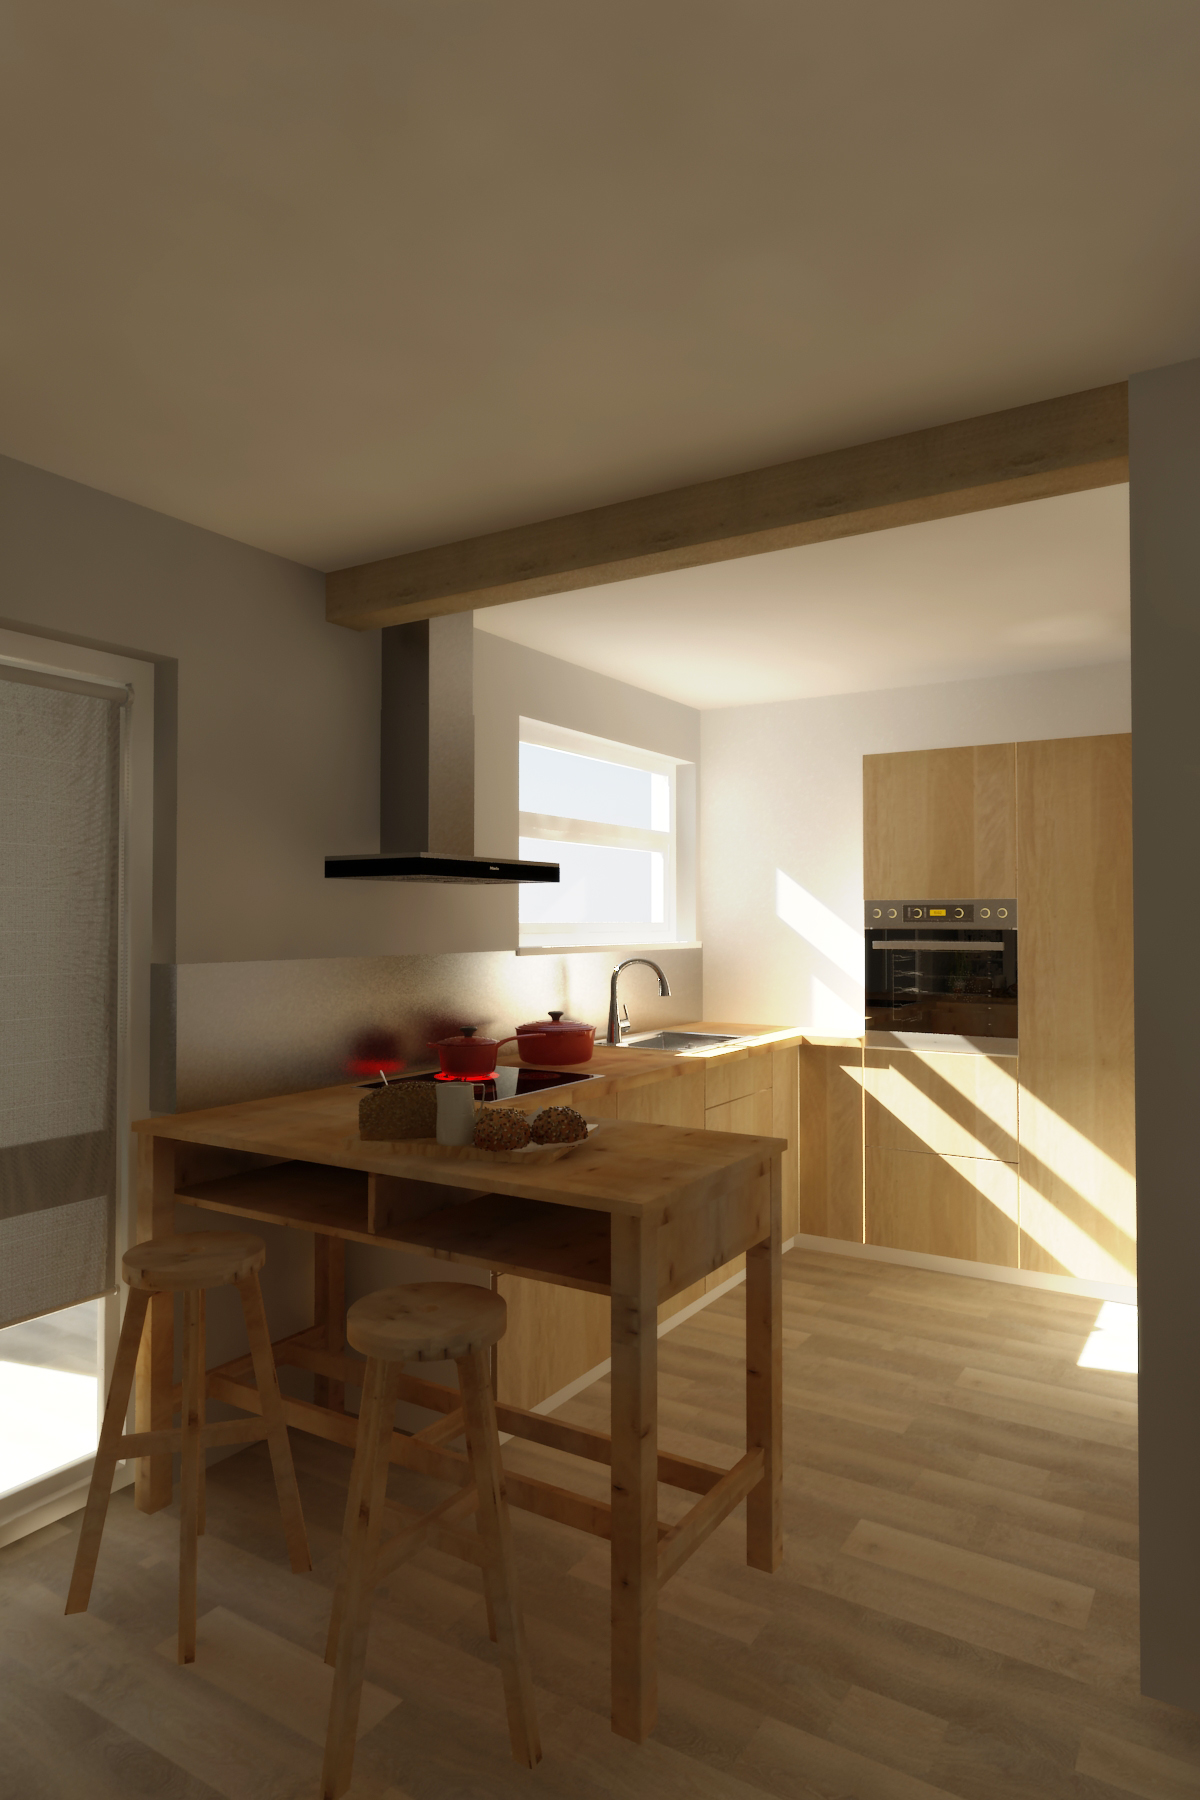 Ikea Kitchen Planner Ireland House Renovations Design And Assemble Your Ikea Kitchen